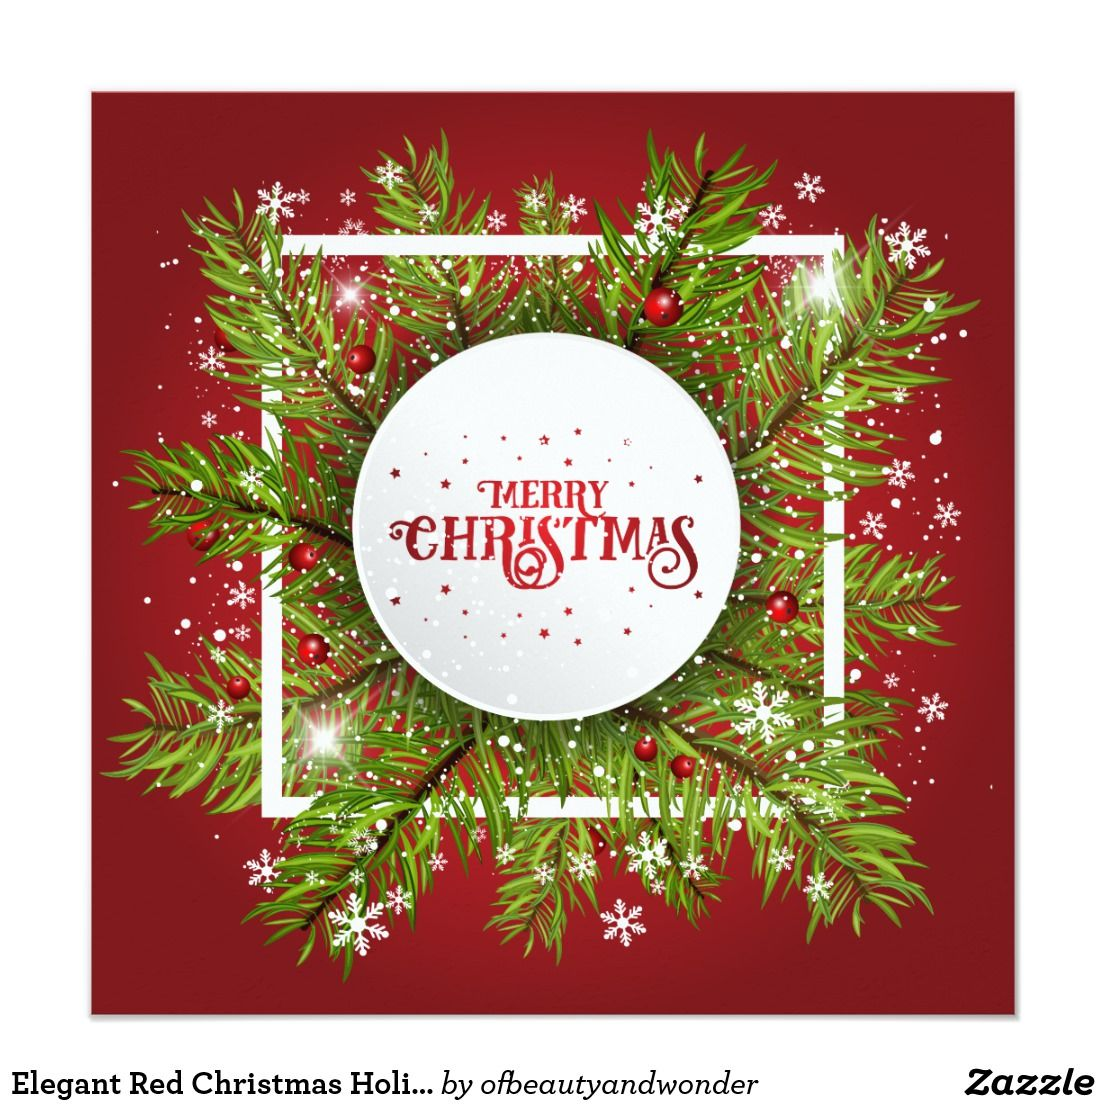 Elegant Red Christmas Holiday Party Invitation Zazzle Com In 2020 Christmas Background Christmas Card Crafts Holiday Party Invitations